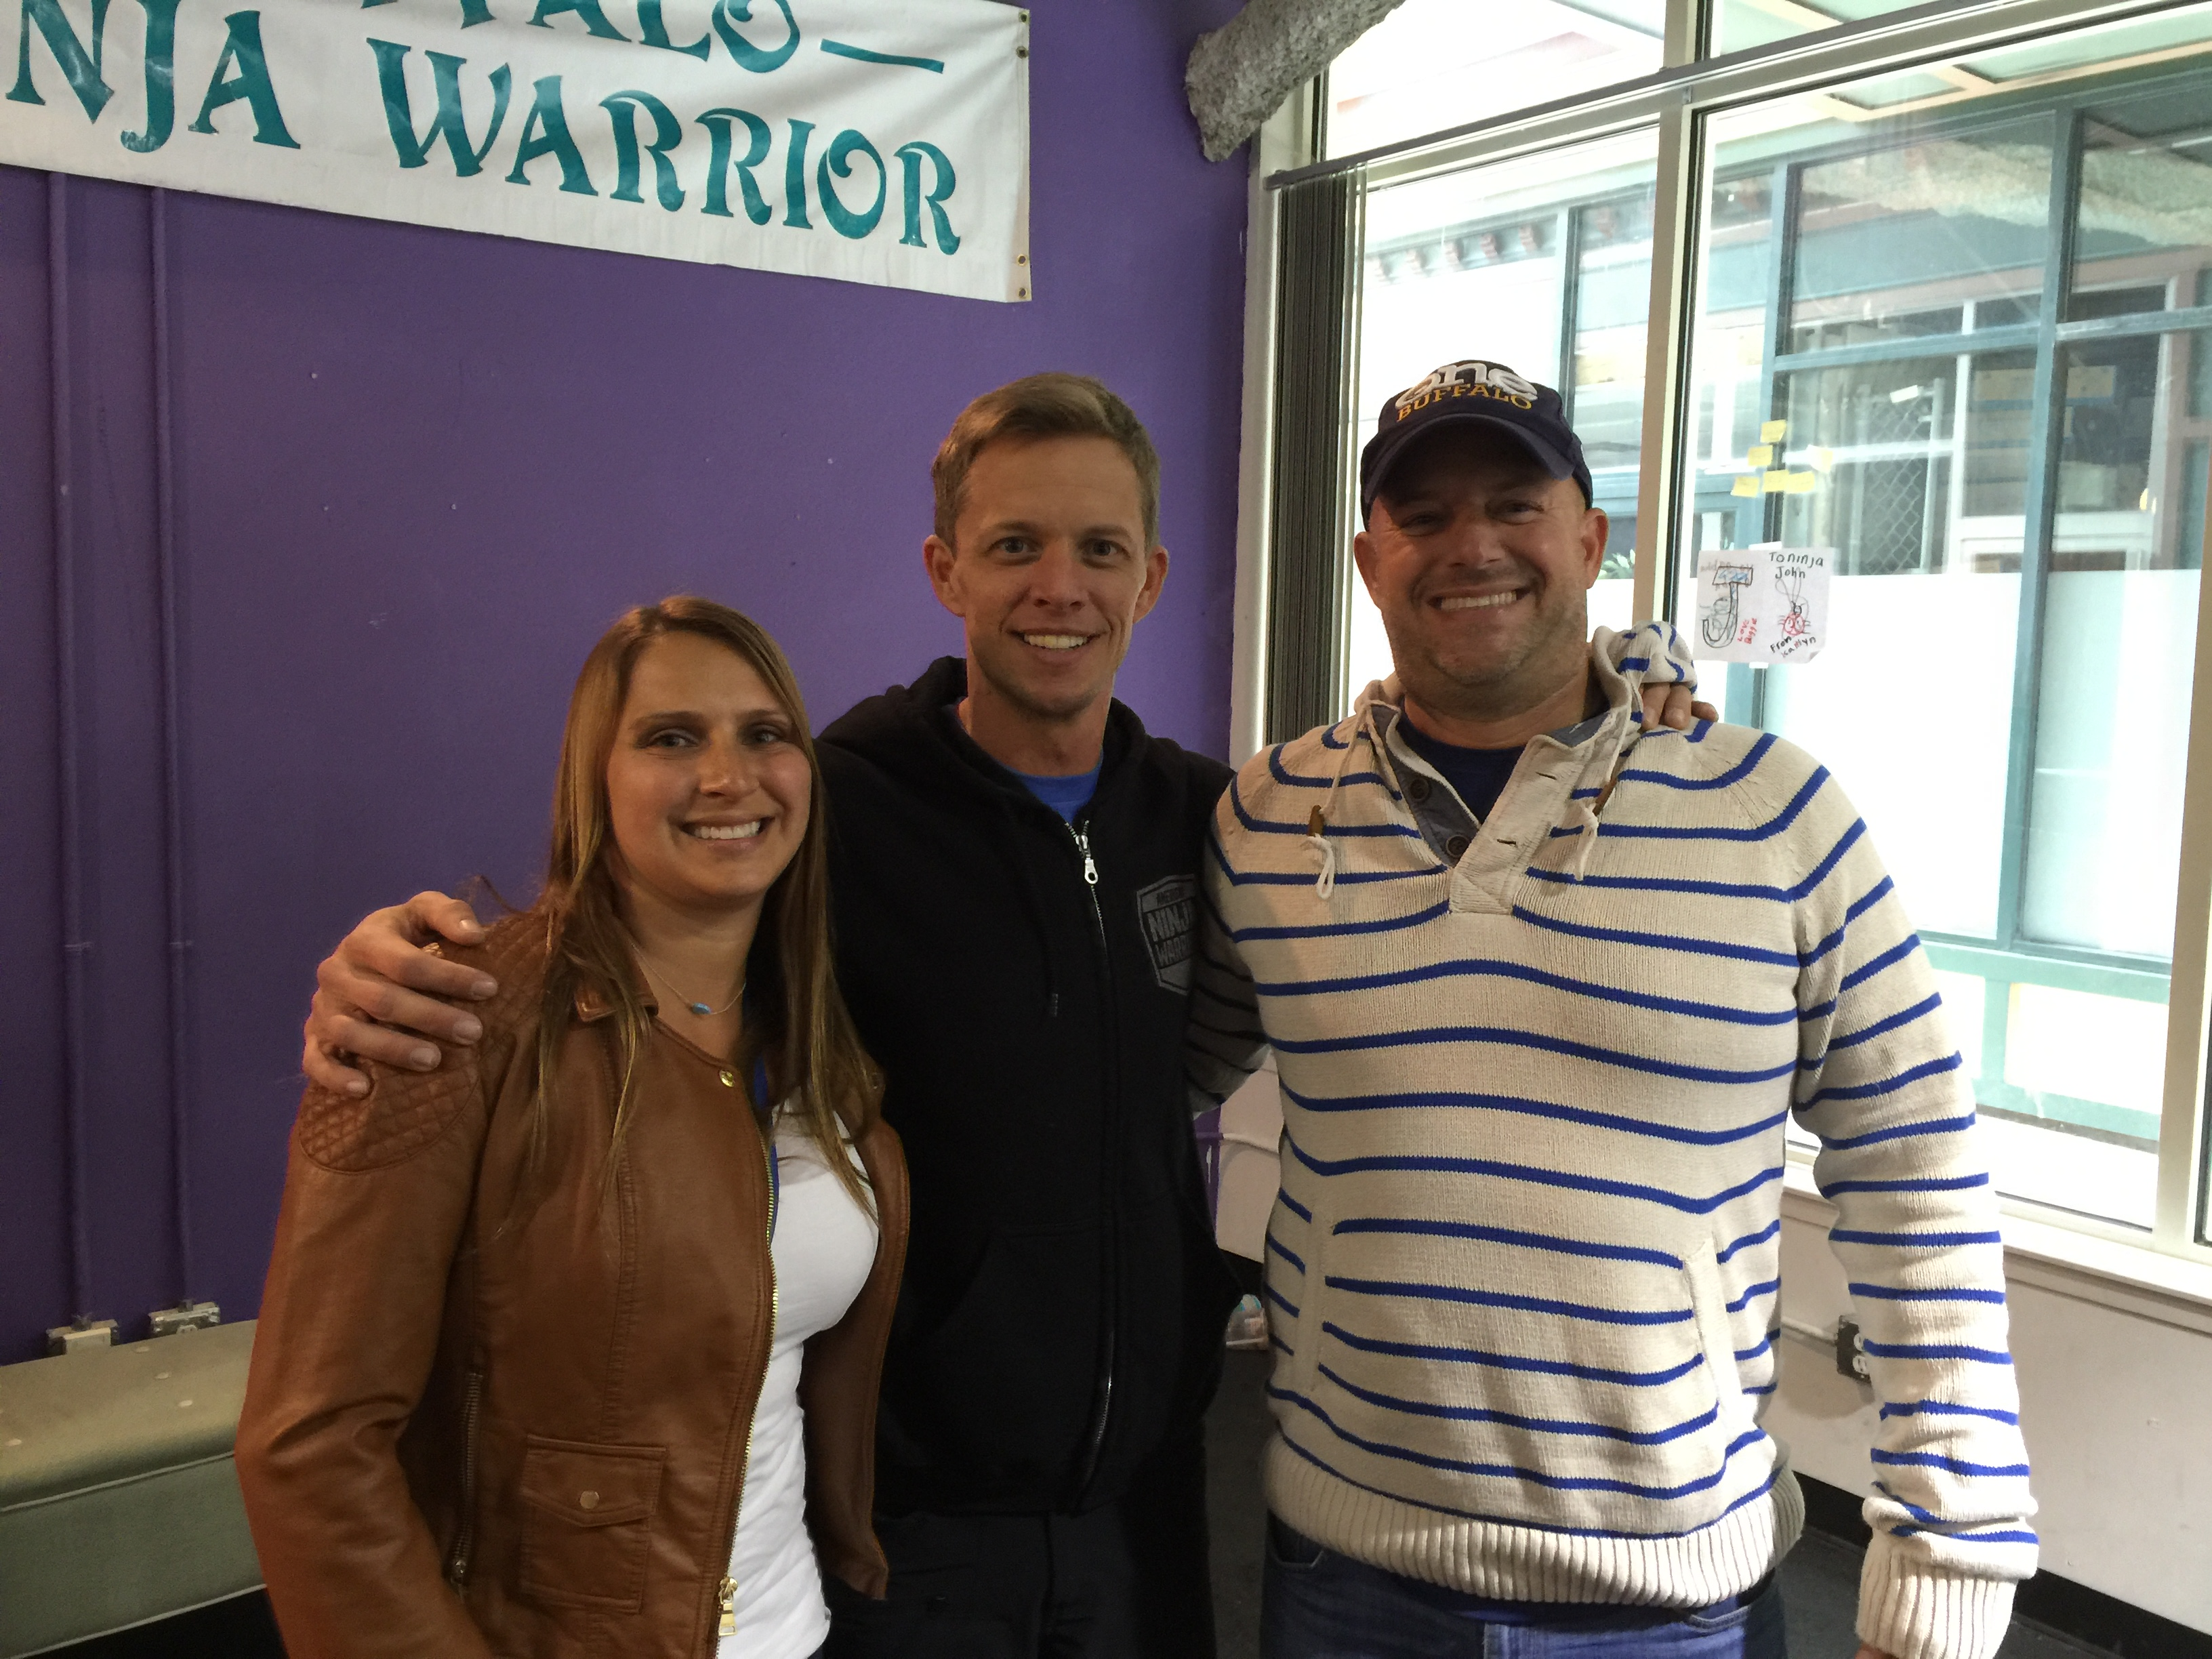 Tara and Adam Martin flank Geoff Britten Saturday during Buffalo Ninja Warrior 6. Britten thanked Adam Martin for starting a Go Fund Me campaign after a controversial ending of last season's 'American Ninja Warrior' TV show.